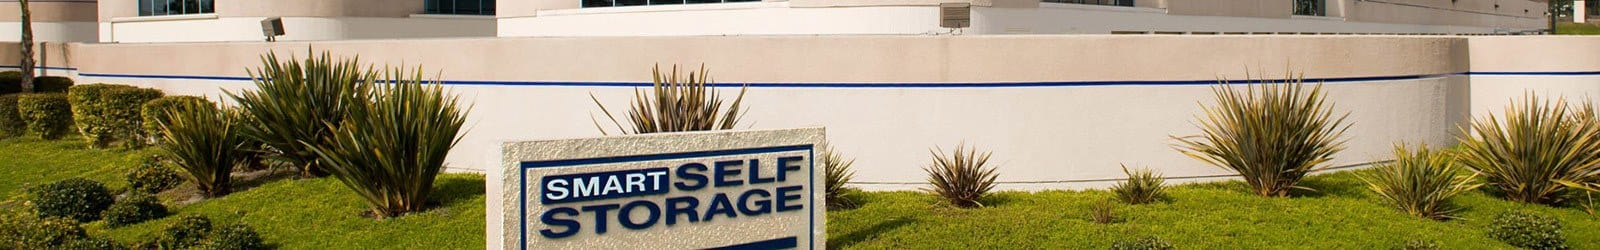 Smart Self Storage of Eastlake has many great features!